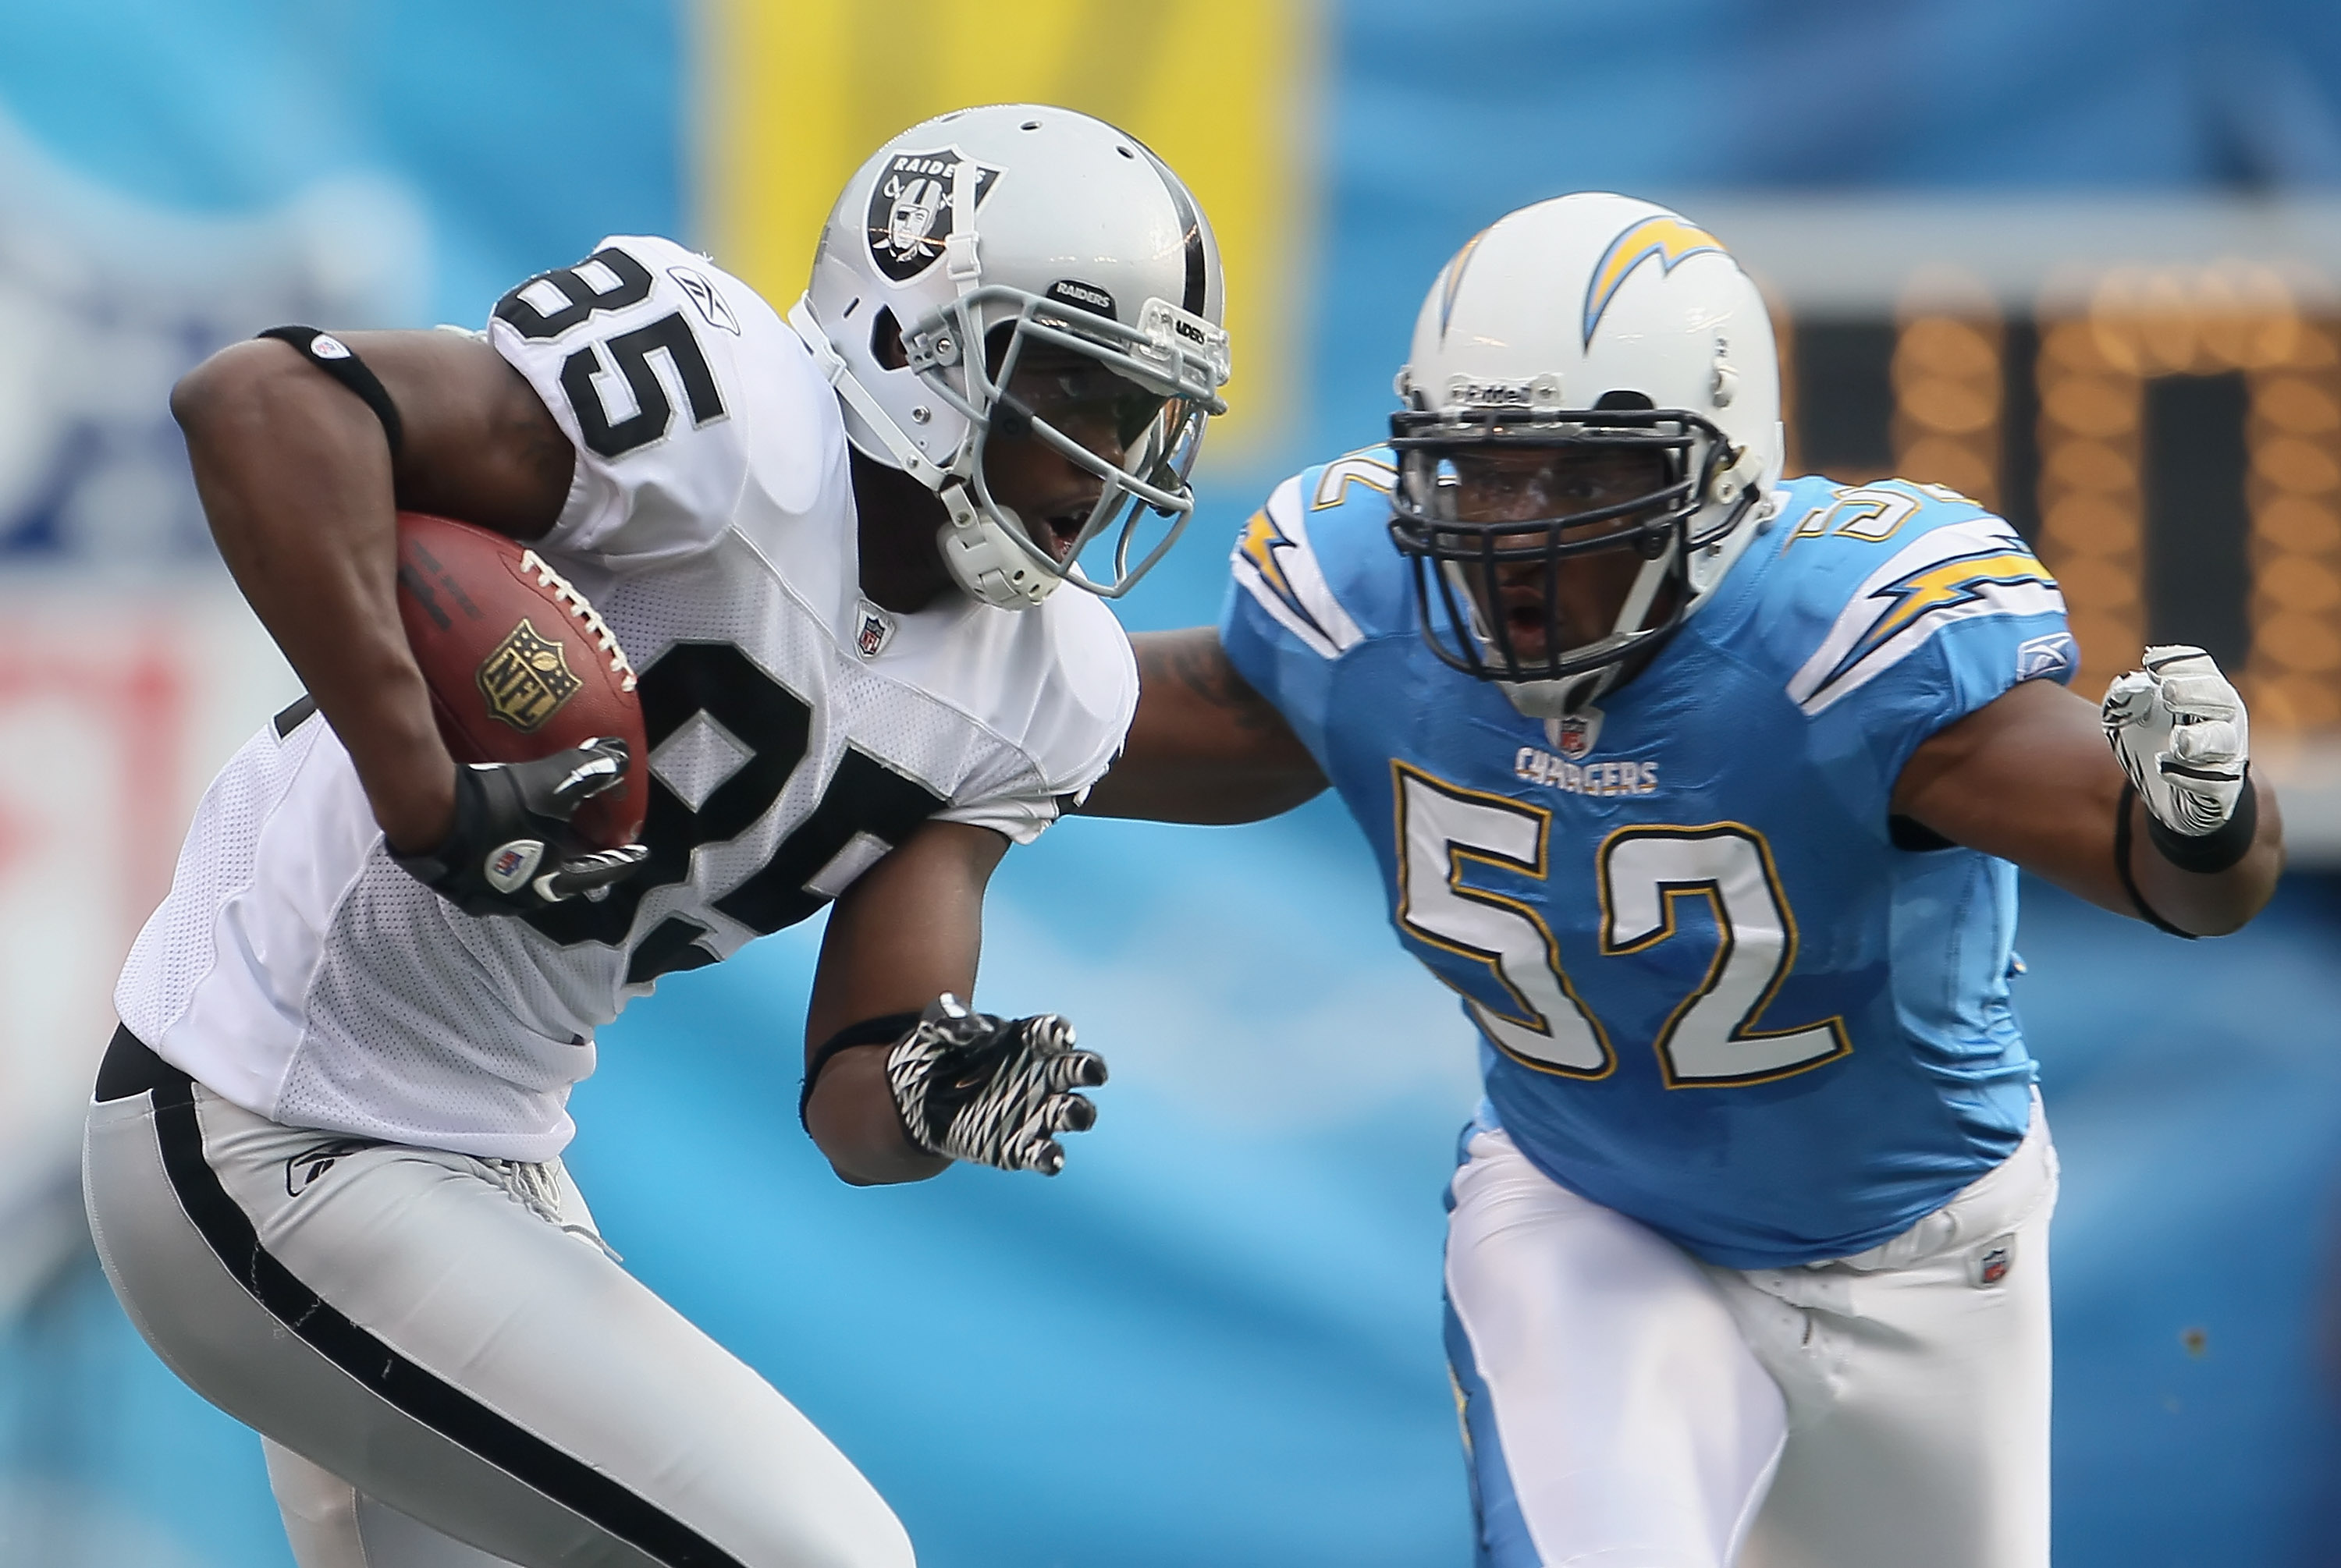 SAN DIEGO - DECEMBER 05:  Darrius Heyward-Bey #85 of the Oakland Raiders is pursued by Larry English #52 of the San Diego Chargers in the second quarter at Qualcomm Stadium on December 5, 2010 in San Diego, California. The Raiders defeated the Chargers 28